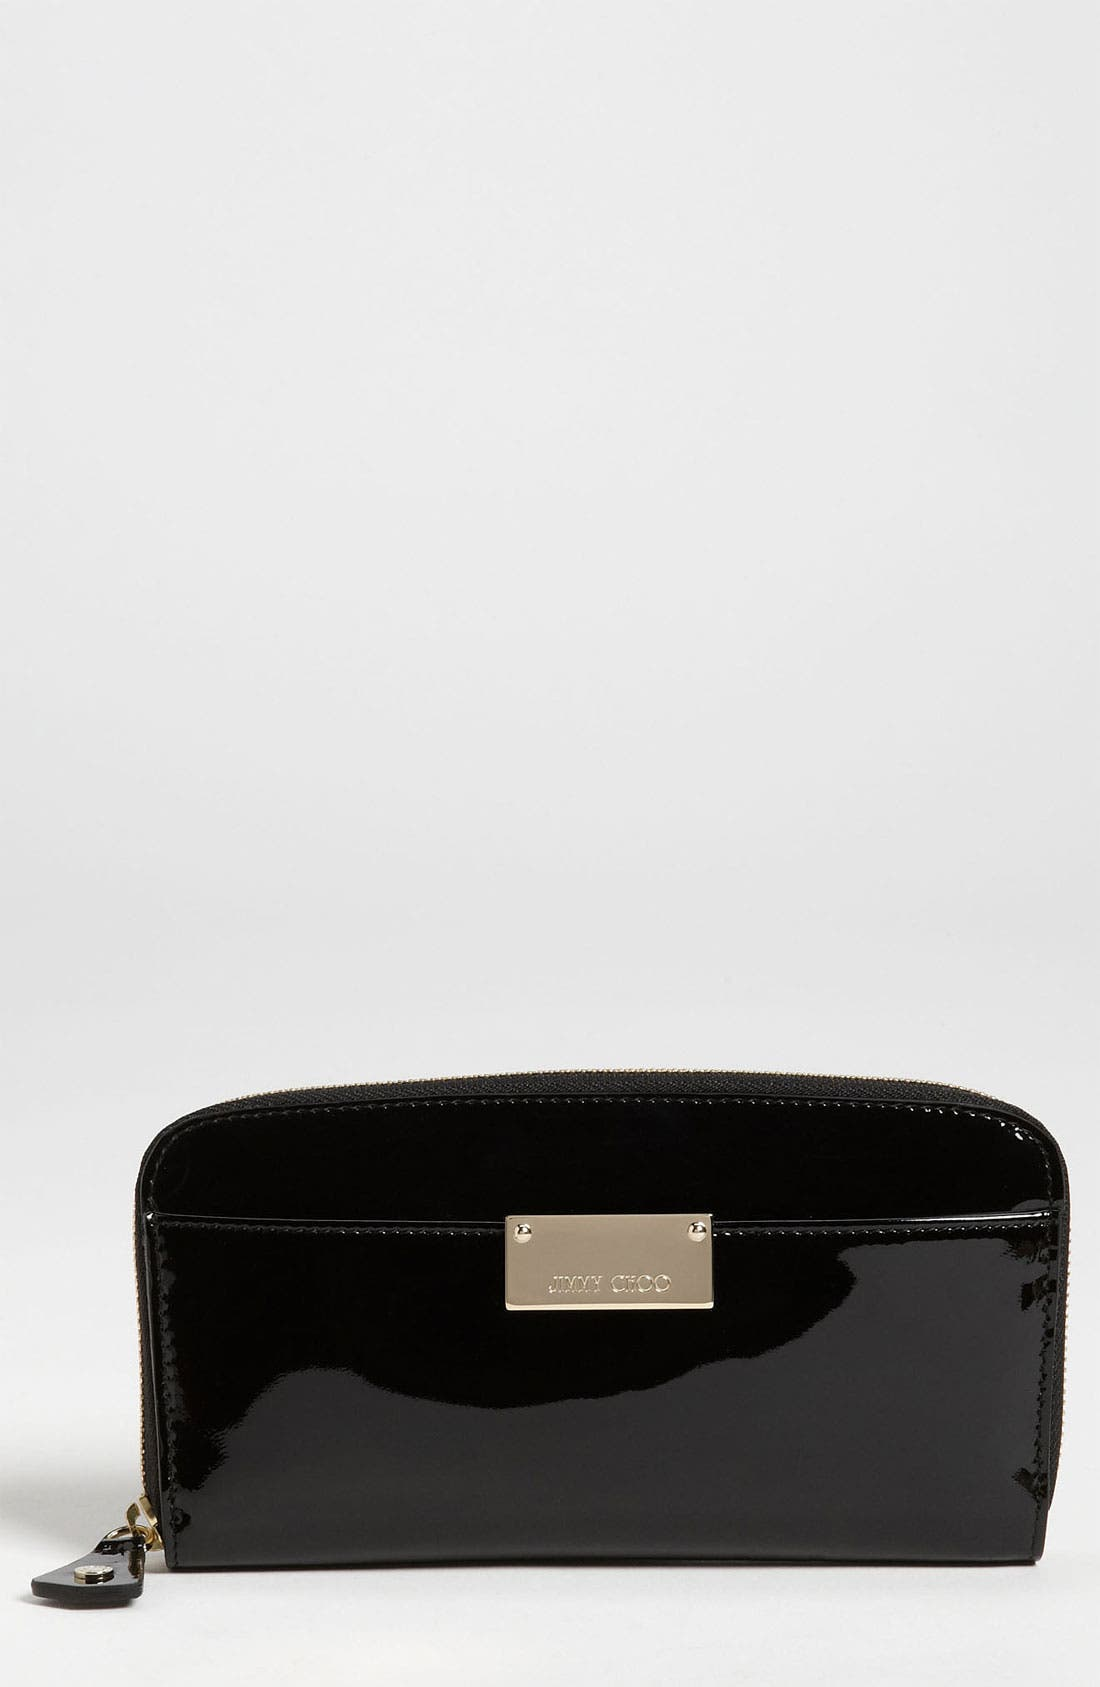 Alternate Image 1 Selected - Jimmy Choo 'Rush' Patent Leather Wallet